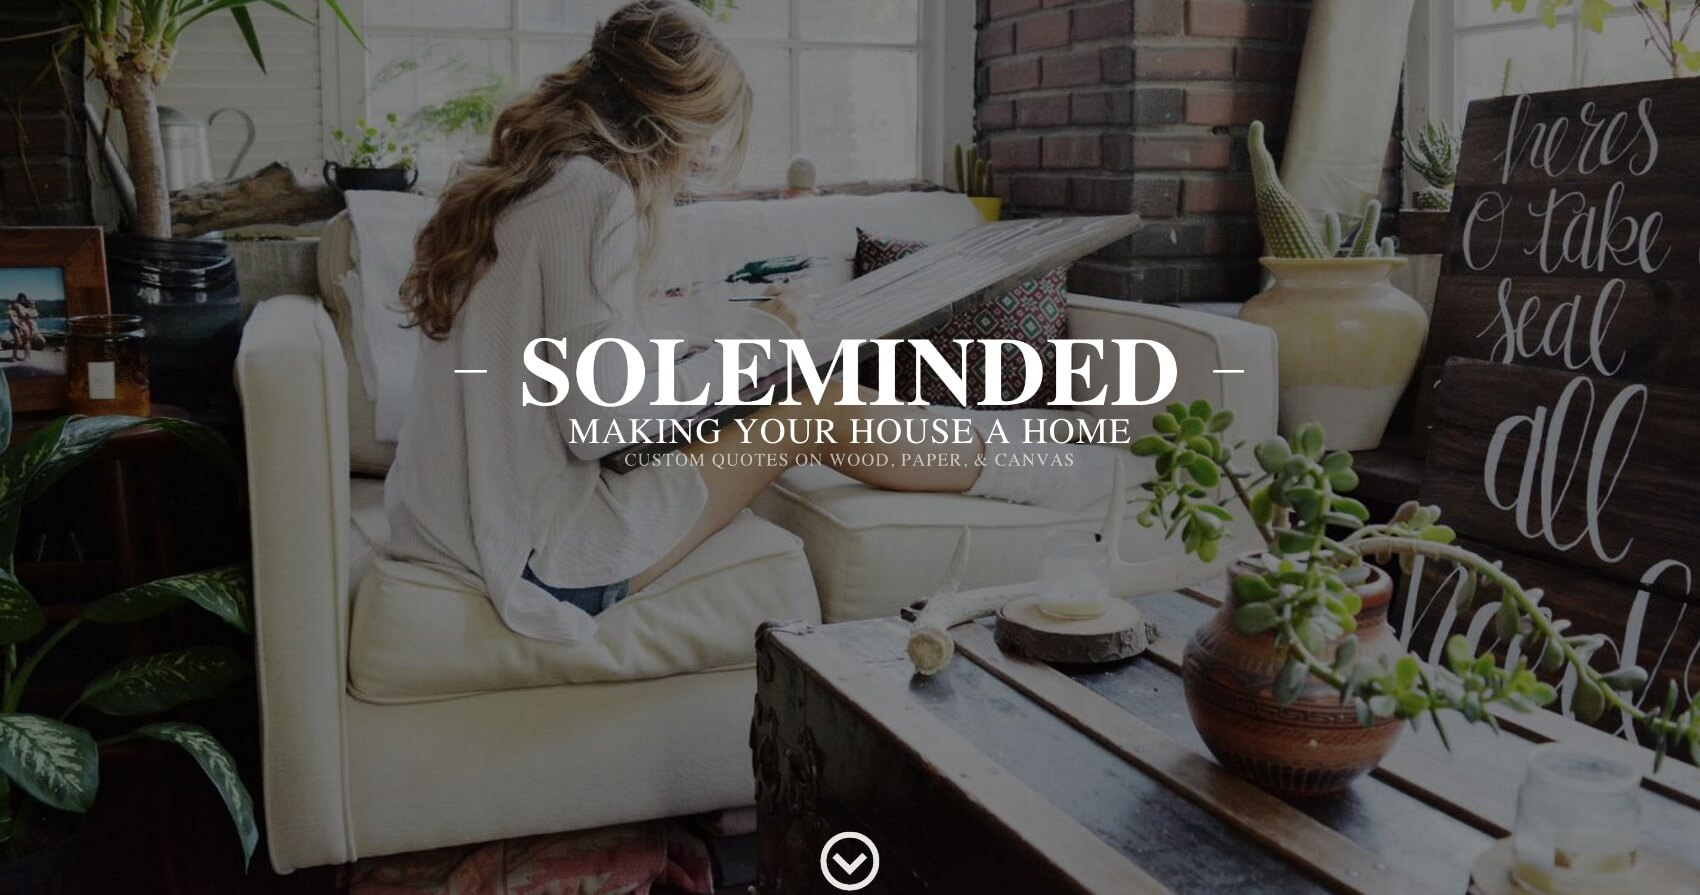 Soleminded (1)